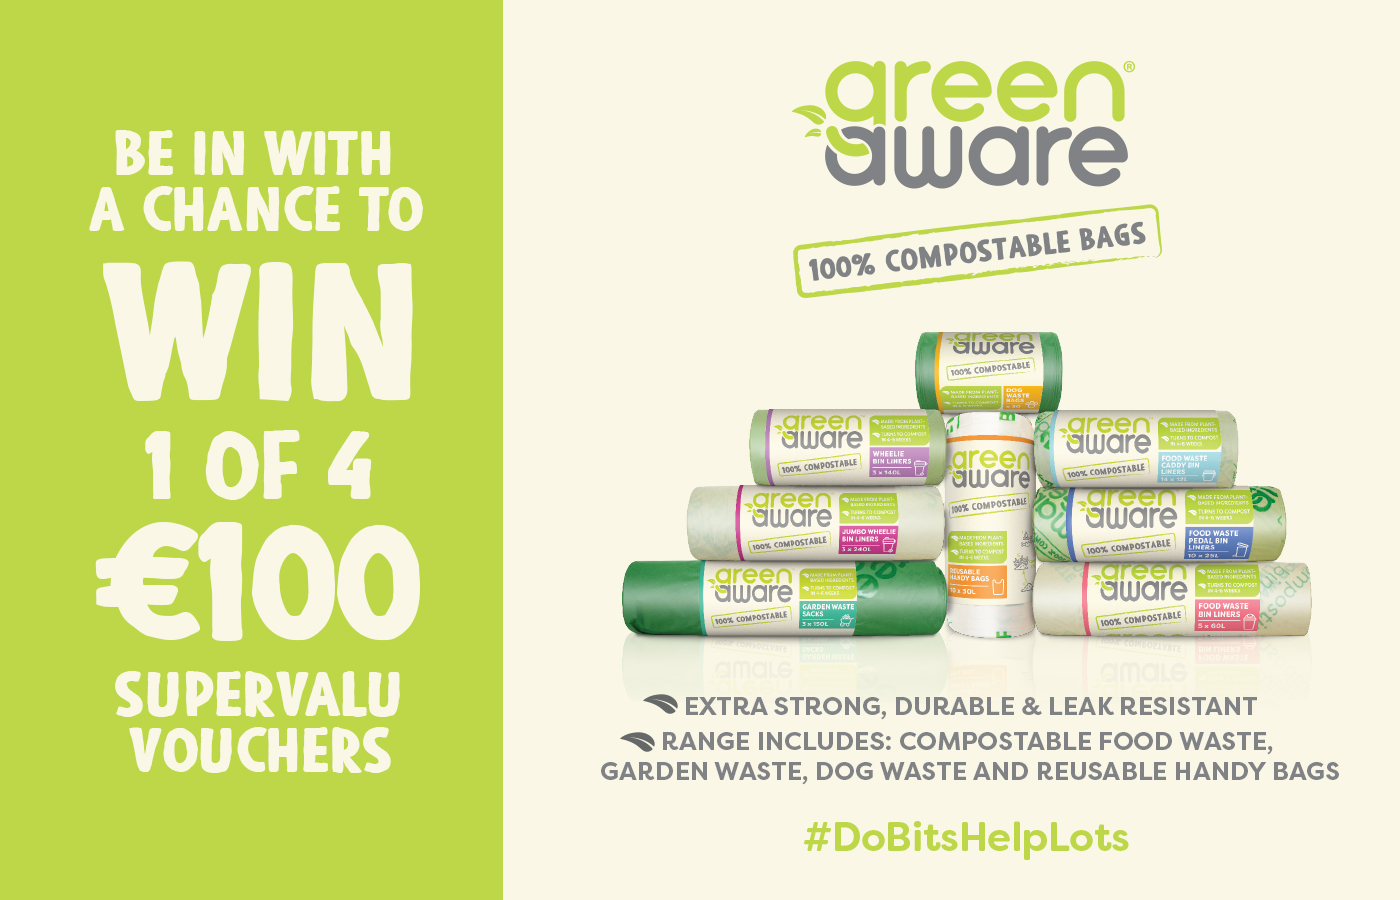 Win 1 of 4 €100 SuperValu vocuhers with GreenAware